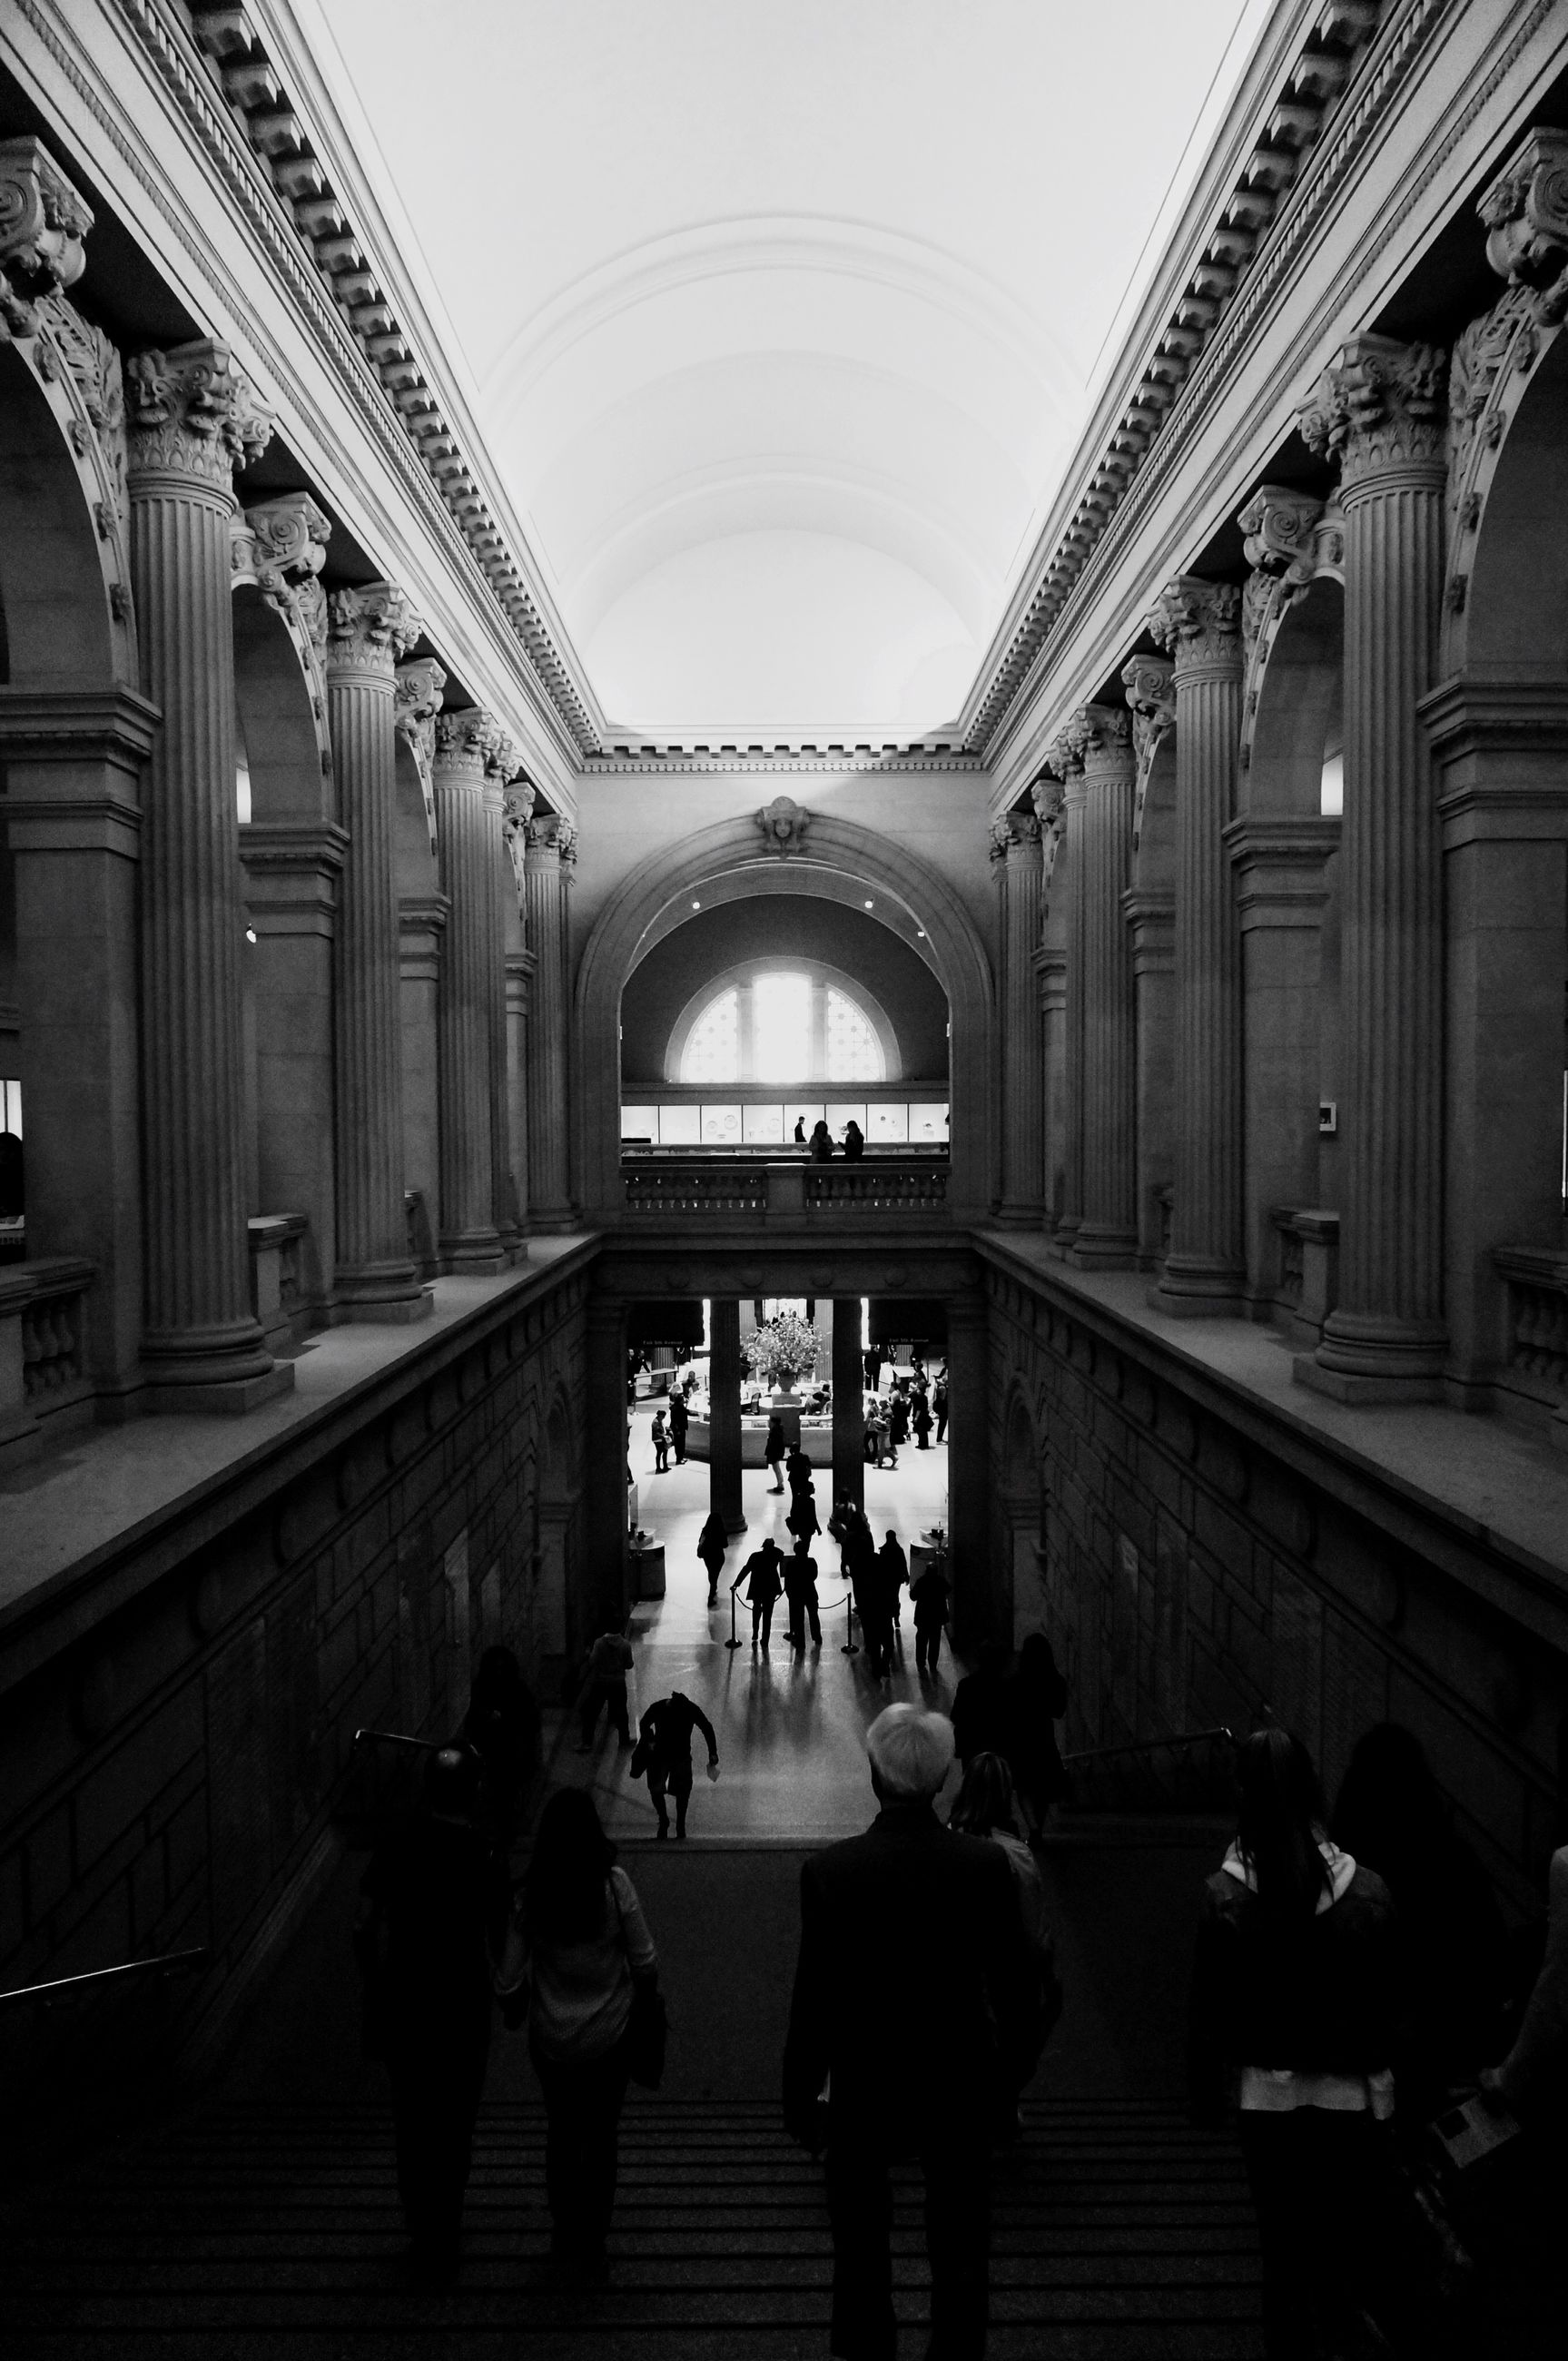 indoors, architecture, men, built structure, person, lifestyles, arch, large group of people, ceiling, leisure activity, walking, travel, architectural column, full length, railroad station, famous place, travel destinations, corridor, group of people